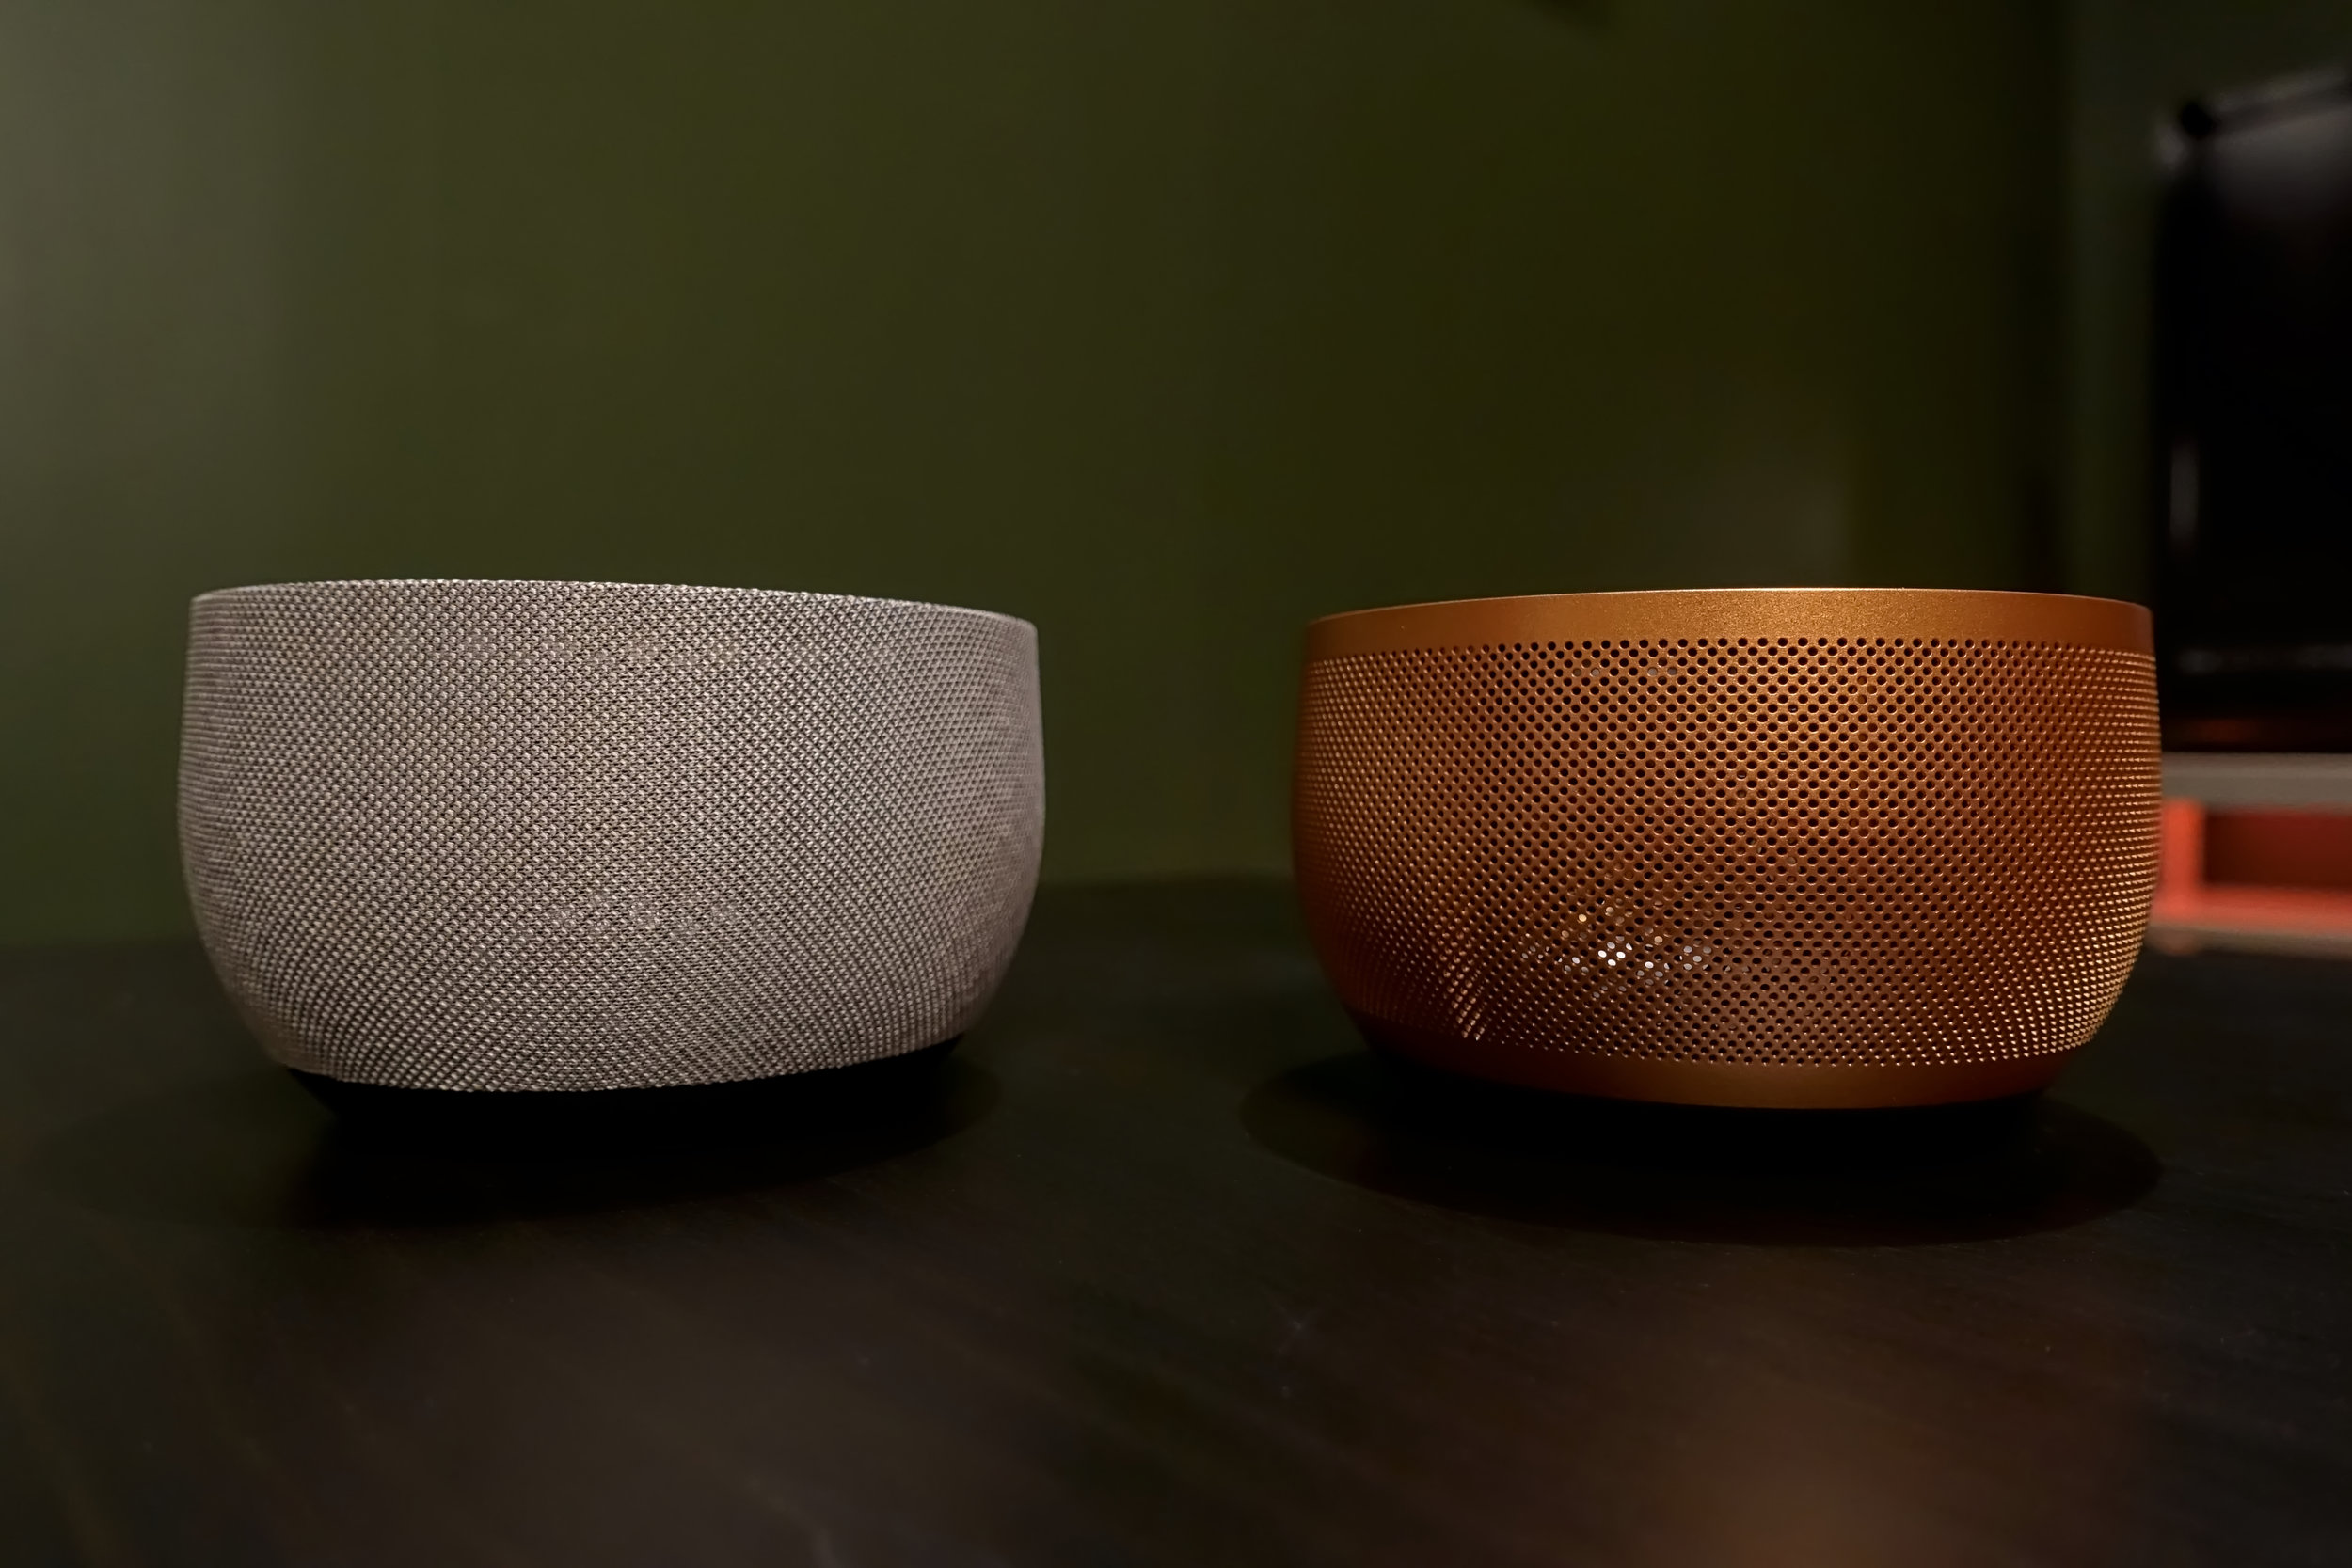 google home gray and copper sidebyside front.jpeg